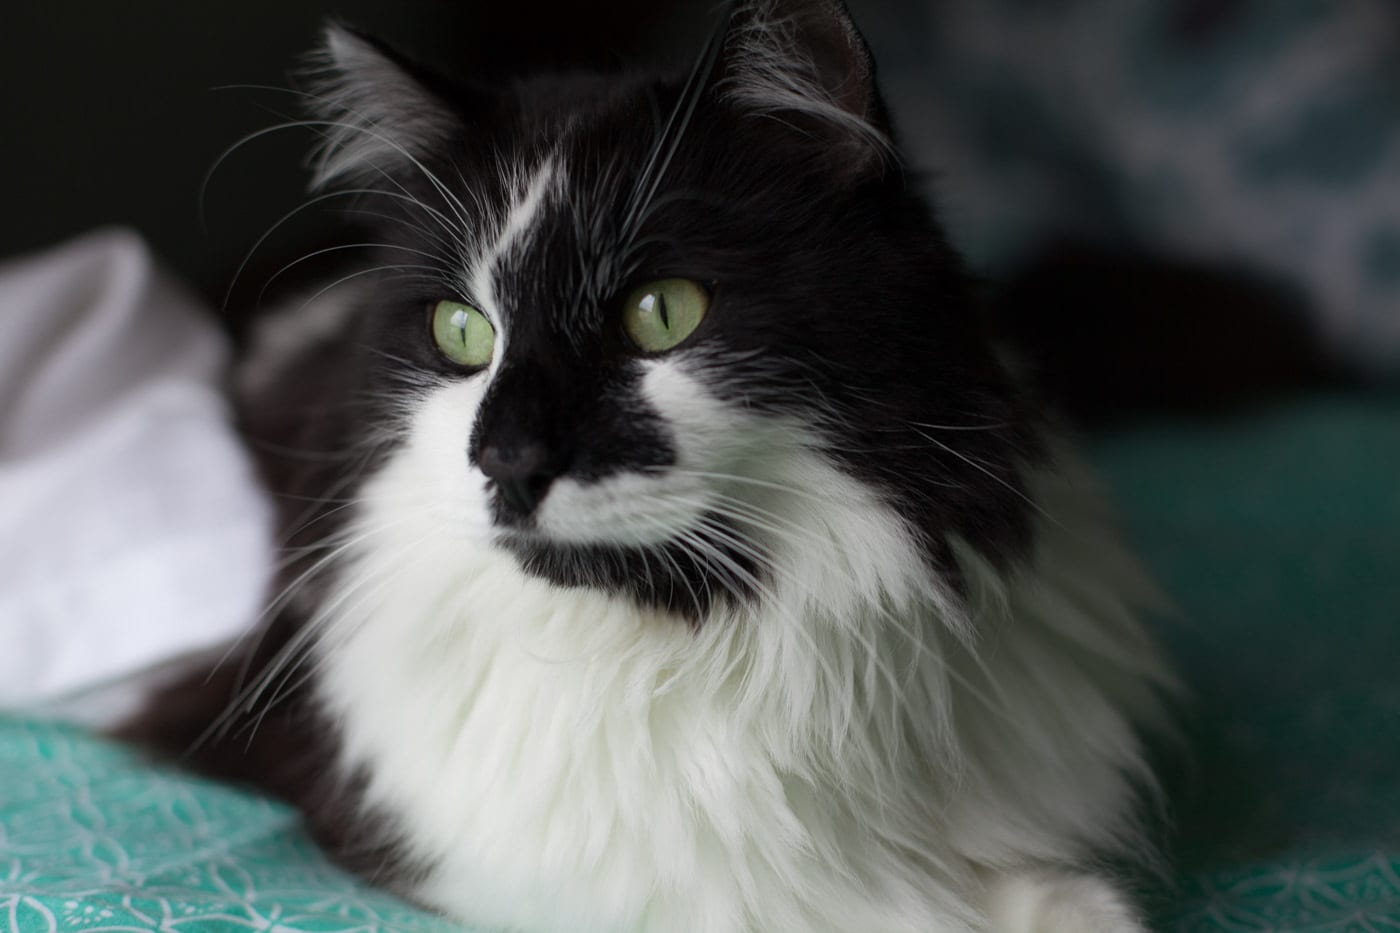 Bandito the Cat - Maine Coon - My First Foster Cat